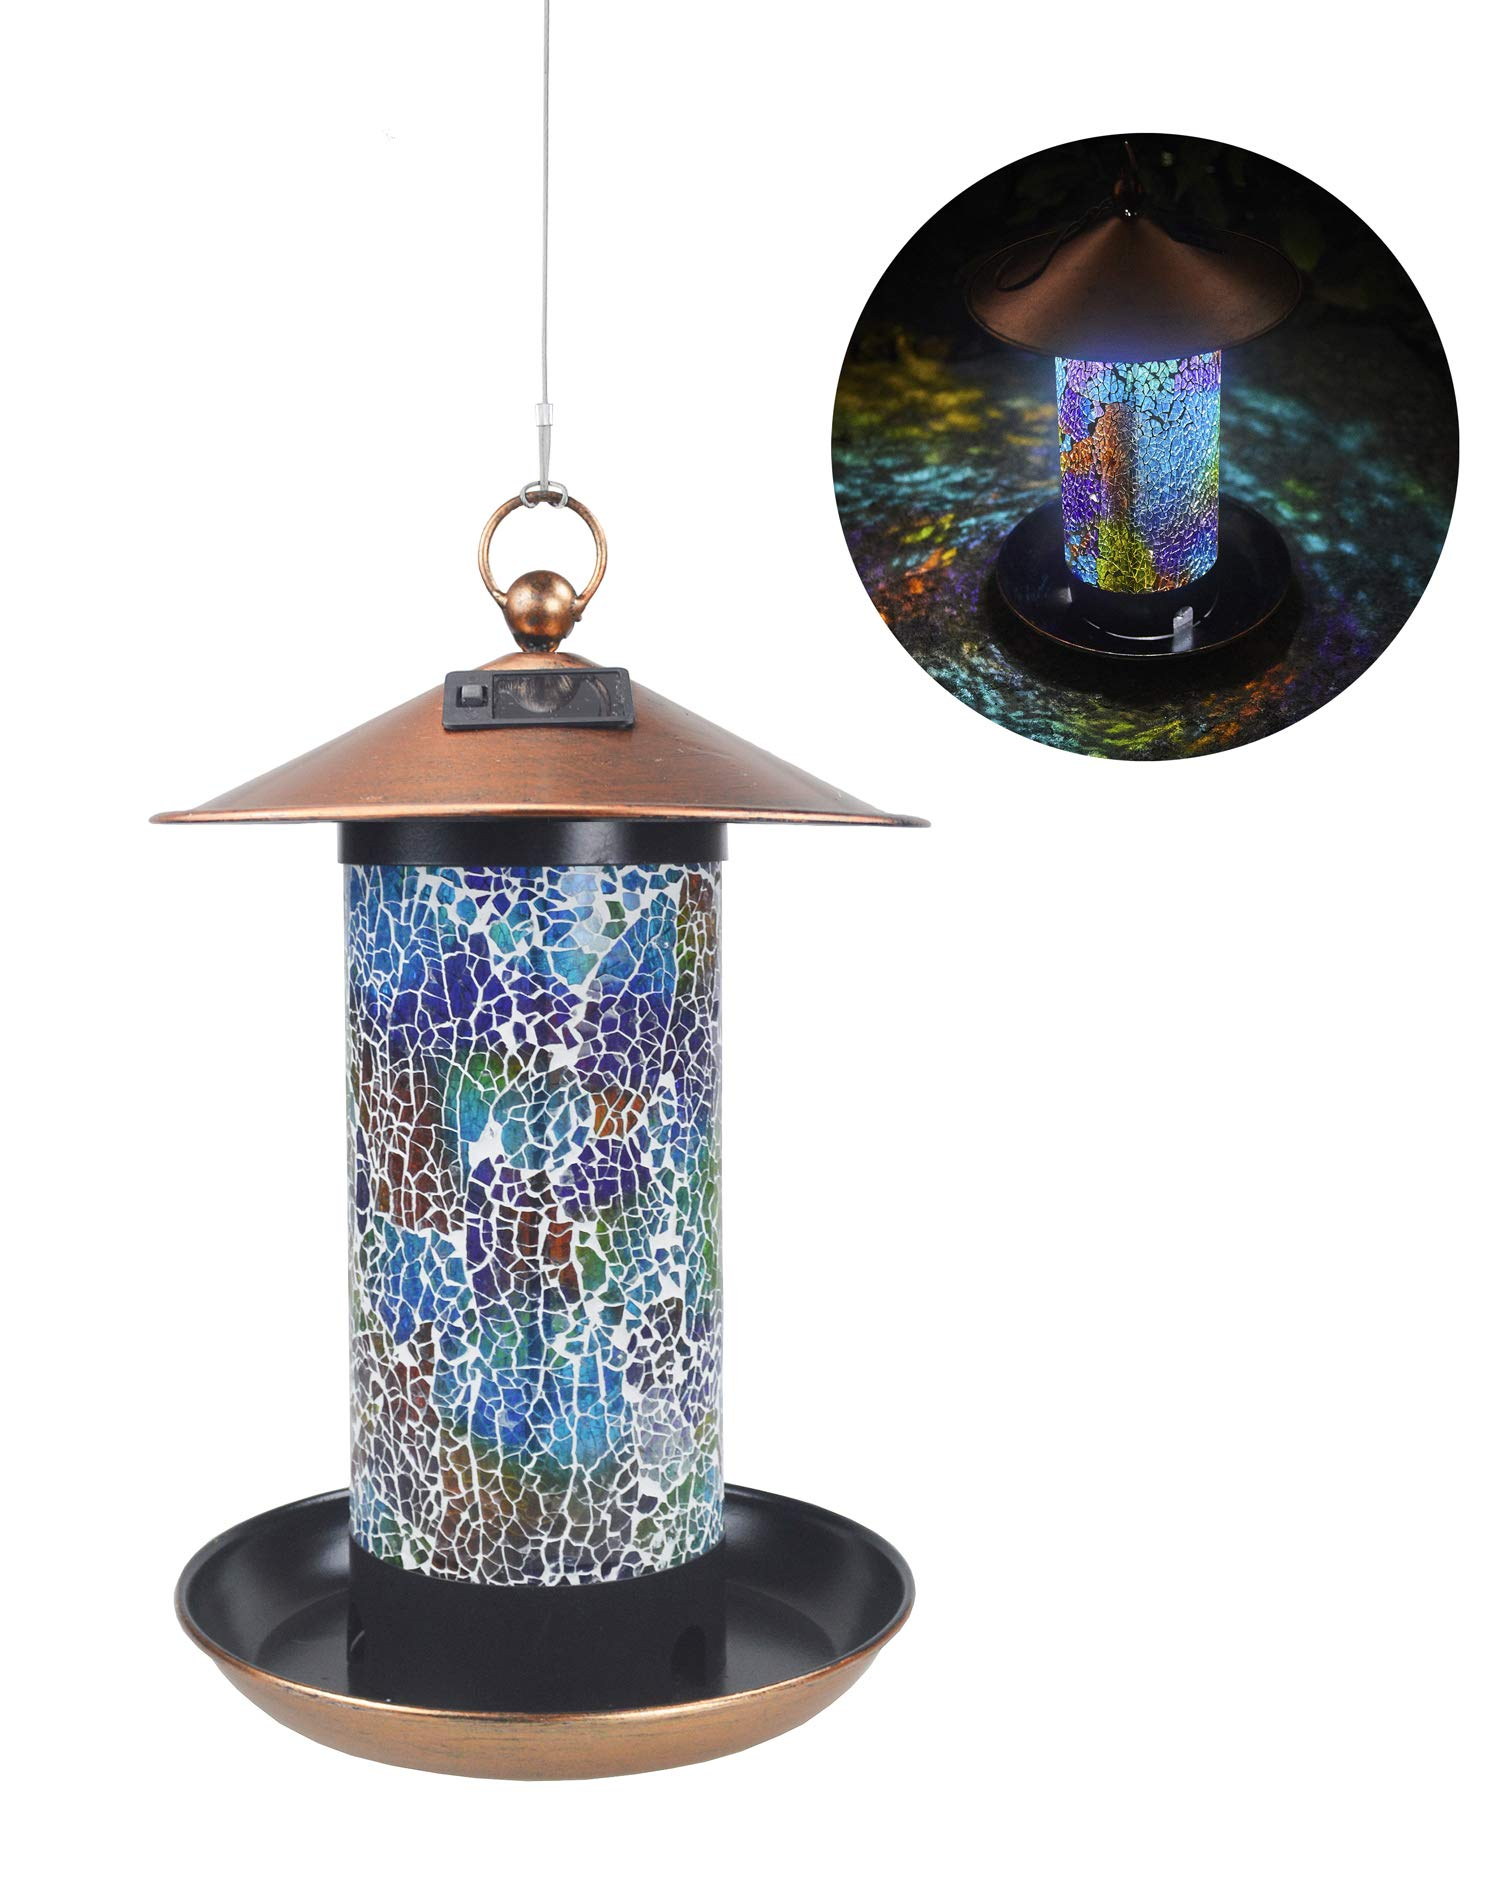 Sepfier Solar Power Energy Bird Feeder Outdoor Hanging Handcrafted Mosaic Glass LED Garden Light Waterproof Unique Gift (Color One)